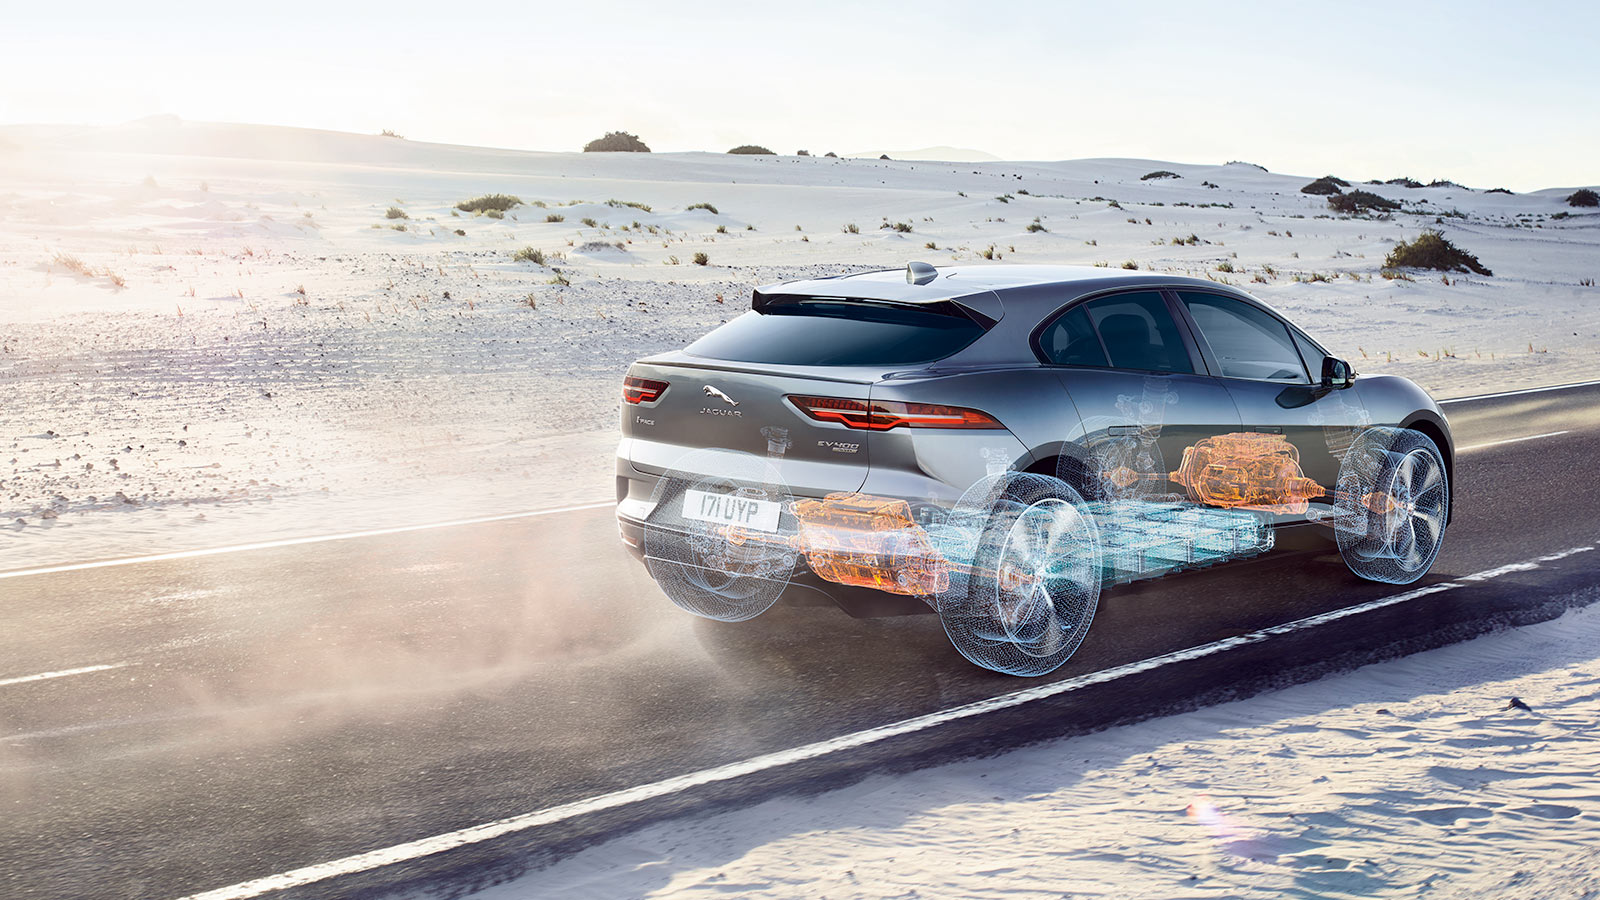 Xray of Jaguar I-PACE Driving on a dusty road